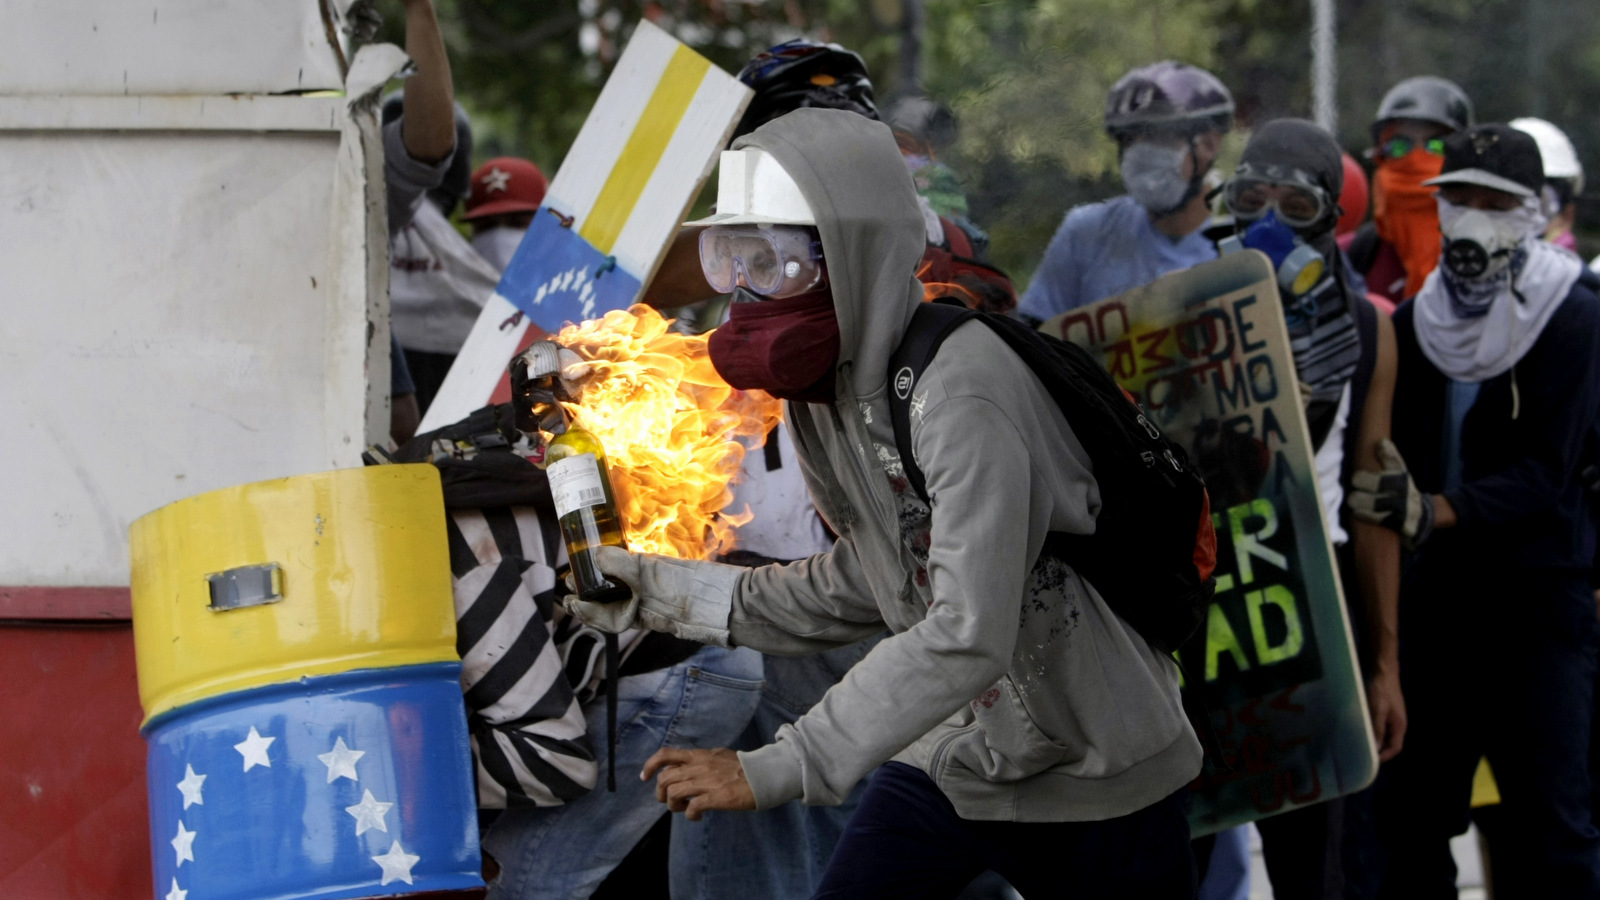 A demonstrators readies a gas bomb as he prepares to throw it at the police during clashes between police and anti-government demonstrators in Caracas, Venezuela, June 7, 2017. The clashes have claimed more than 60 lives as they enter their third month. (AP/Fernando Llano)